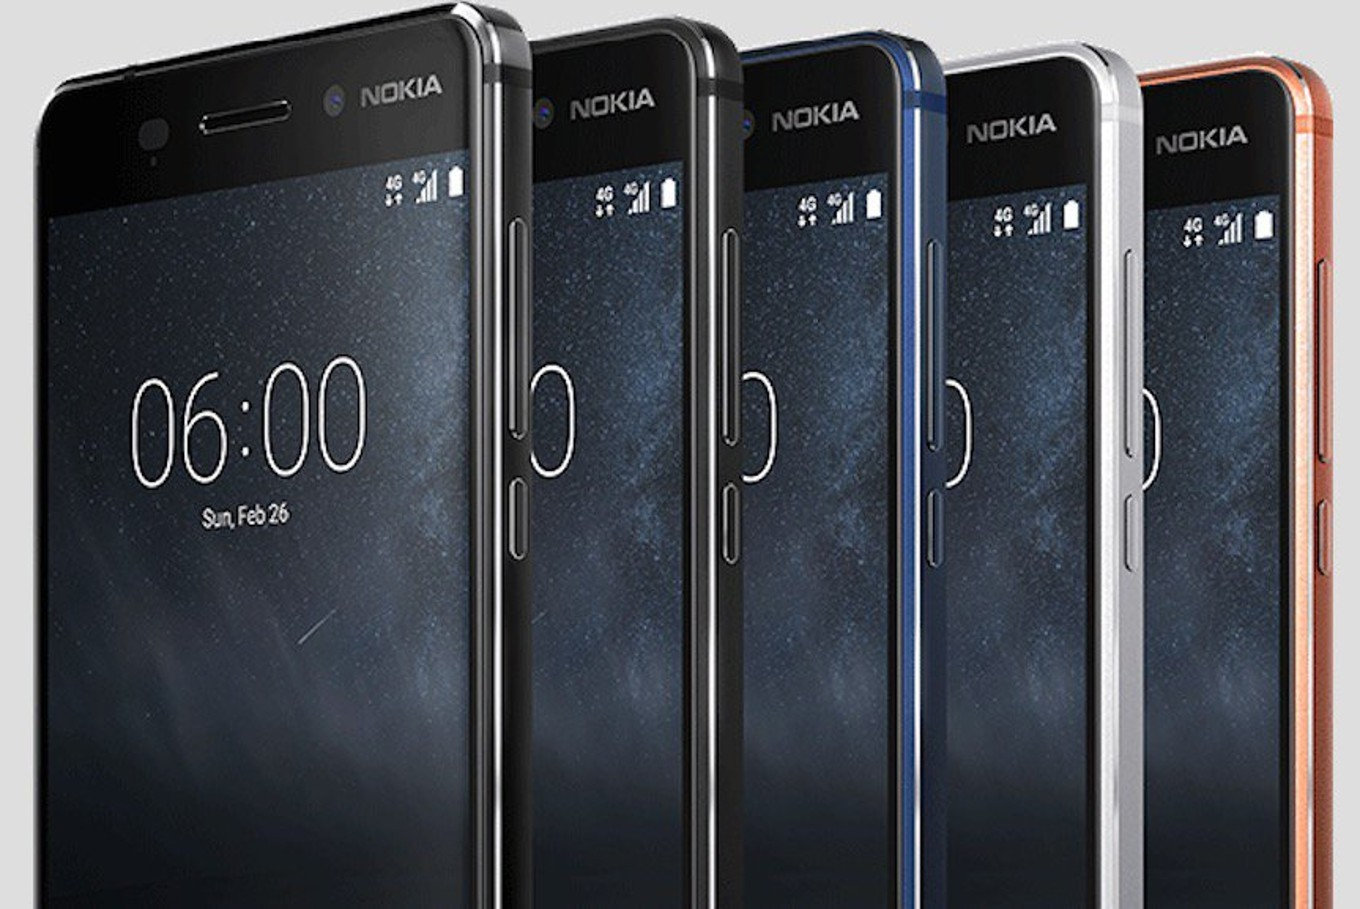 Nokia Android phones targeted for global release - Science